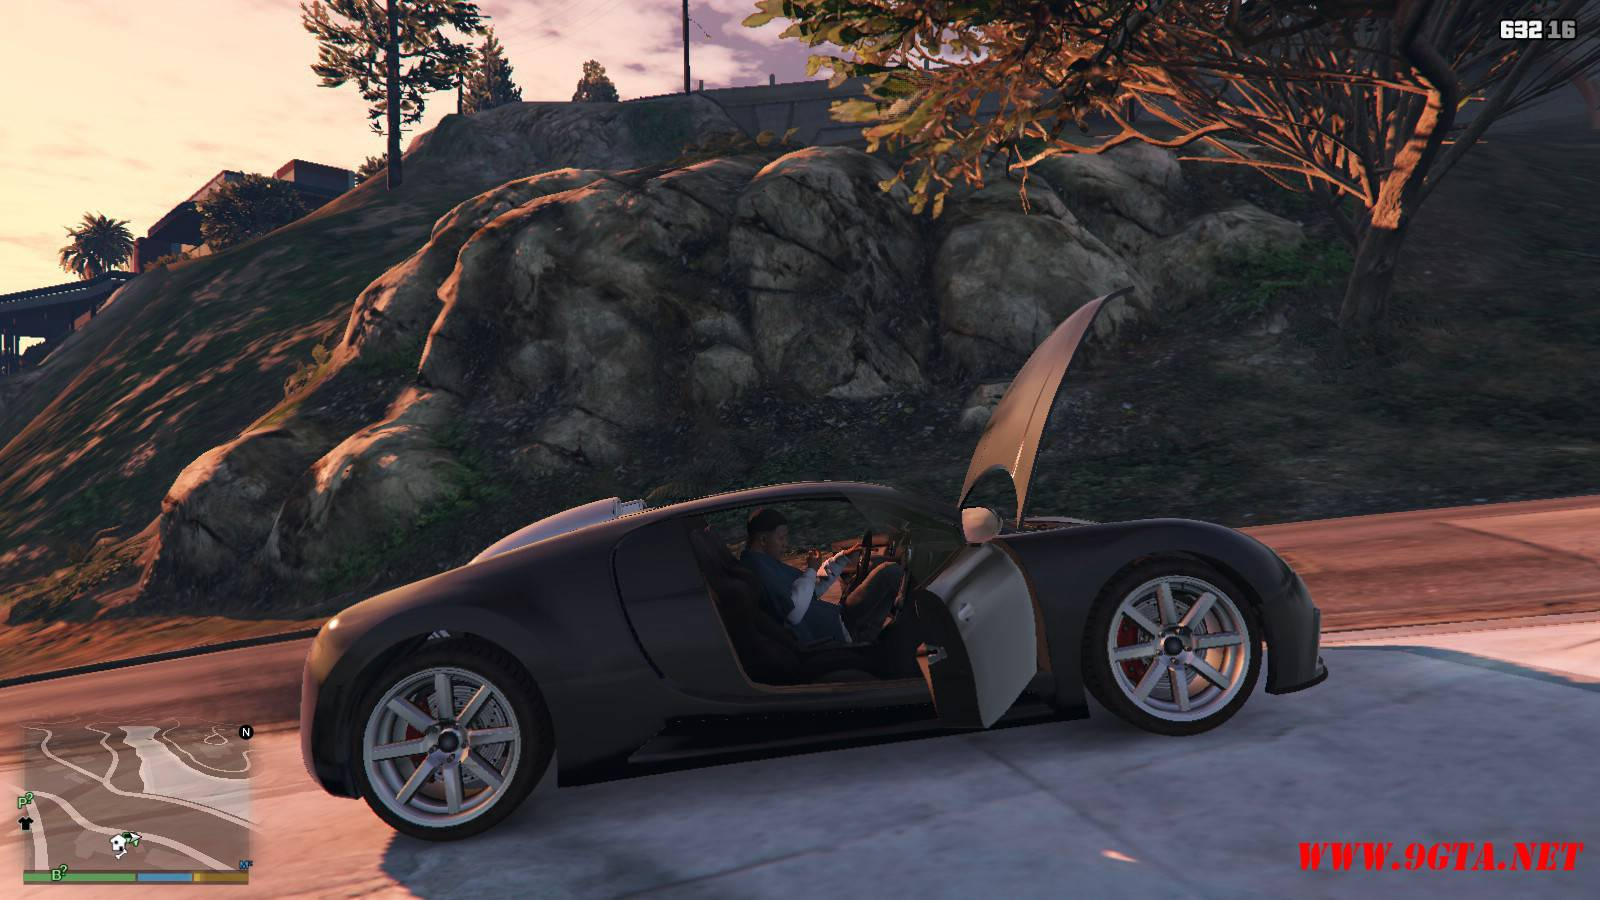 Truffade Adders Sport GTA5 Mods (15)